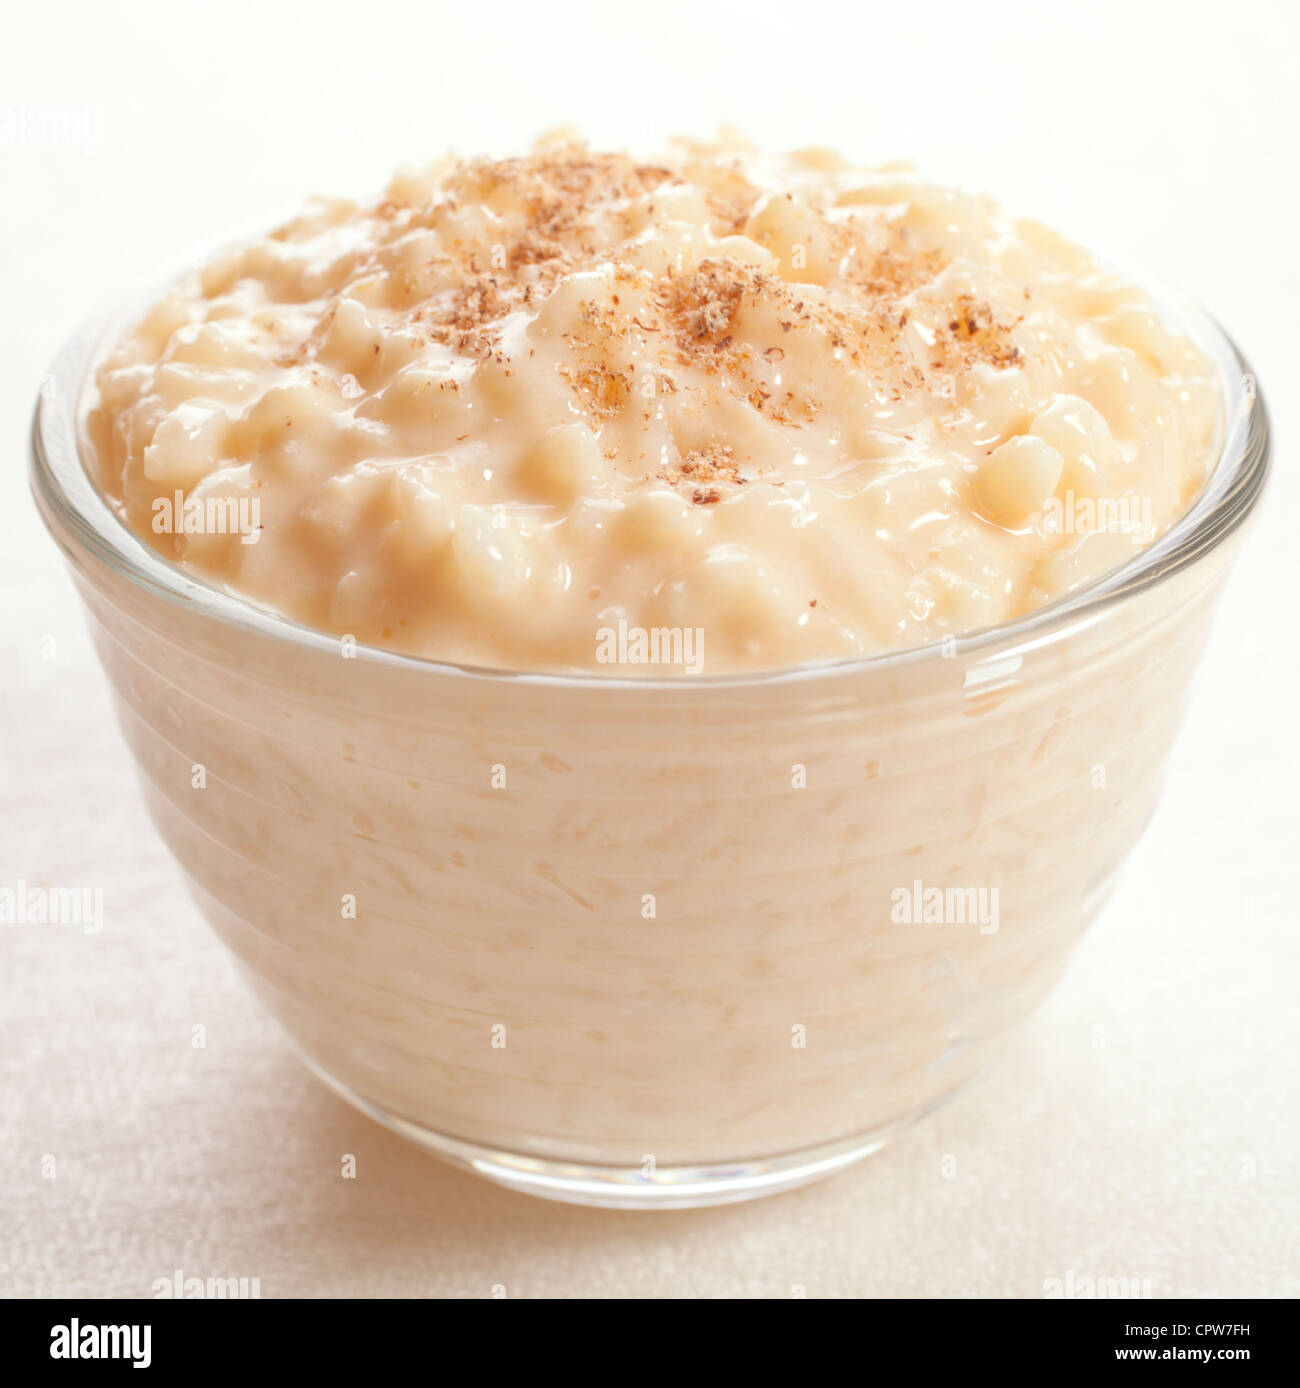 Rice pudding sprinkled with nutmeg in an individual glass bowl. Stock Photo